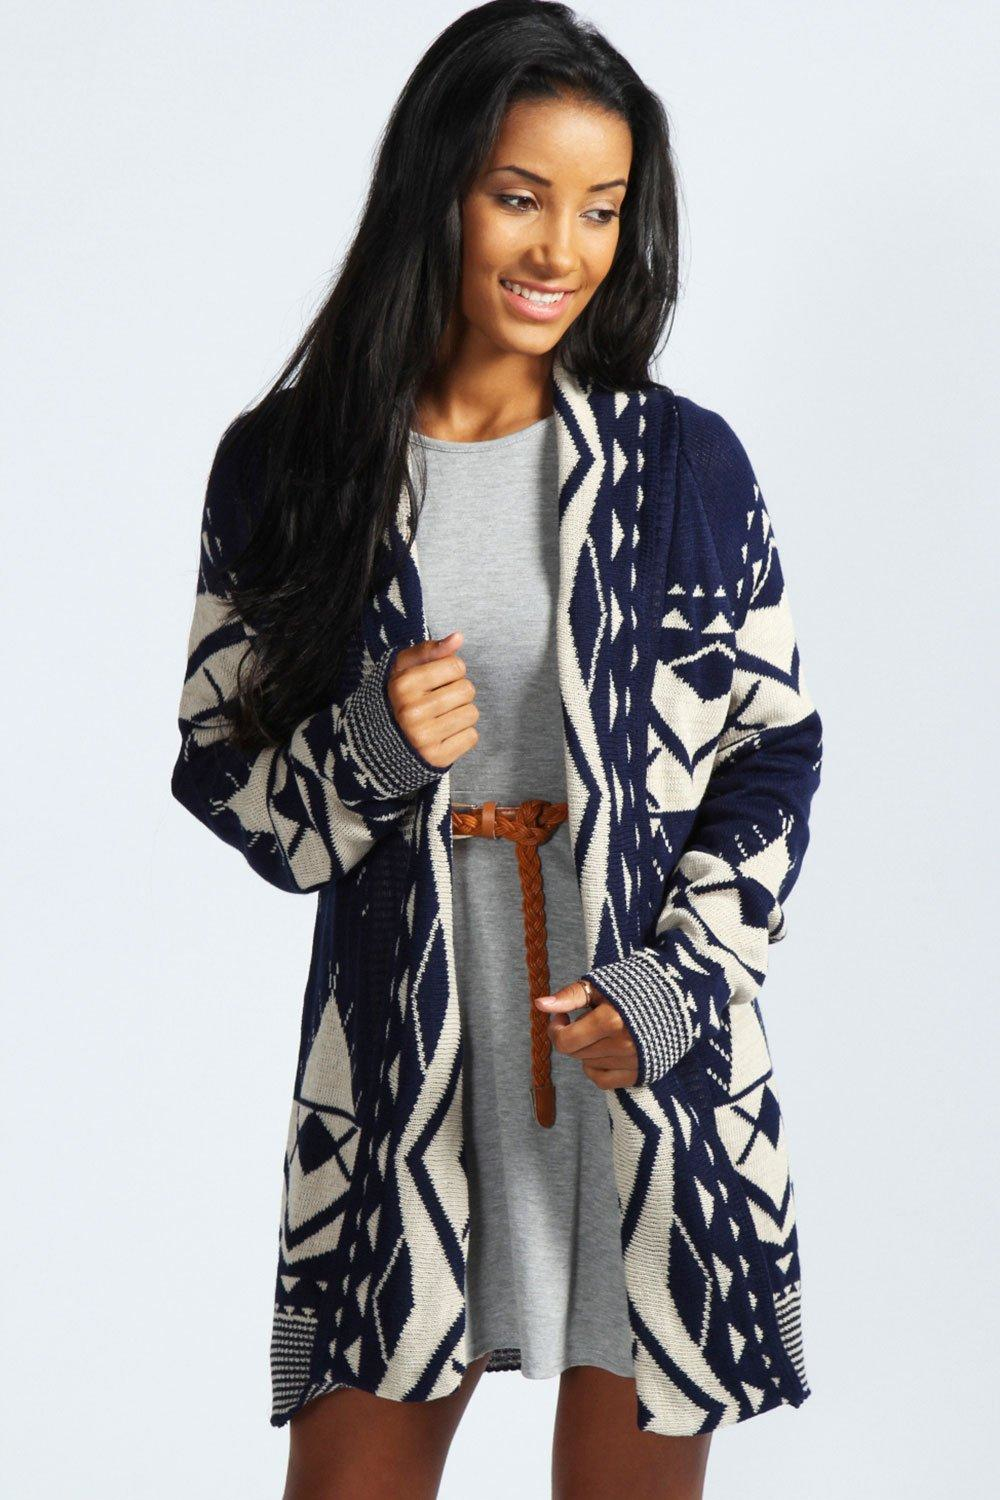 Get the best deals on aztec tribal open cardigan sweaters and save up to 70% off at Poshmark now! Whatever you're shopping for, we've got it.